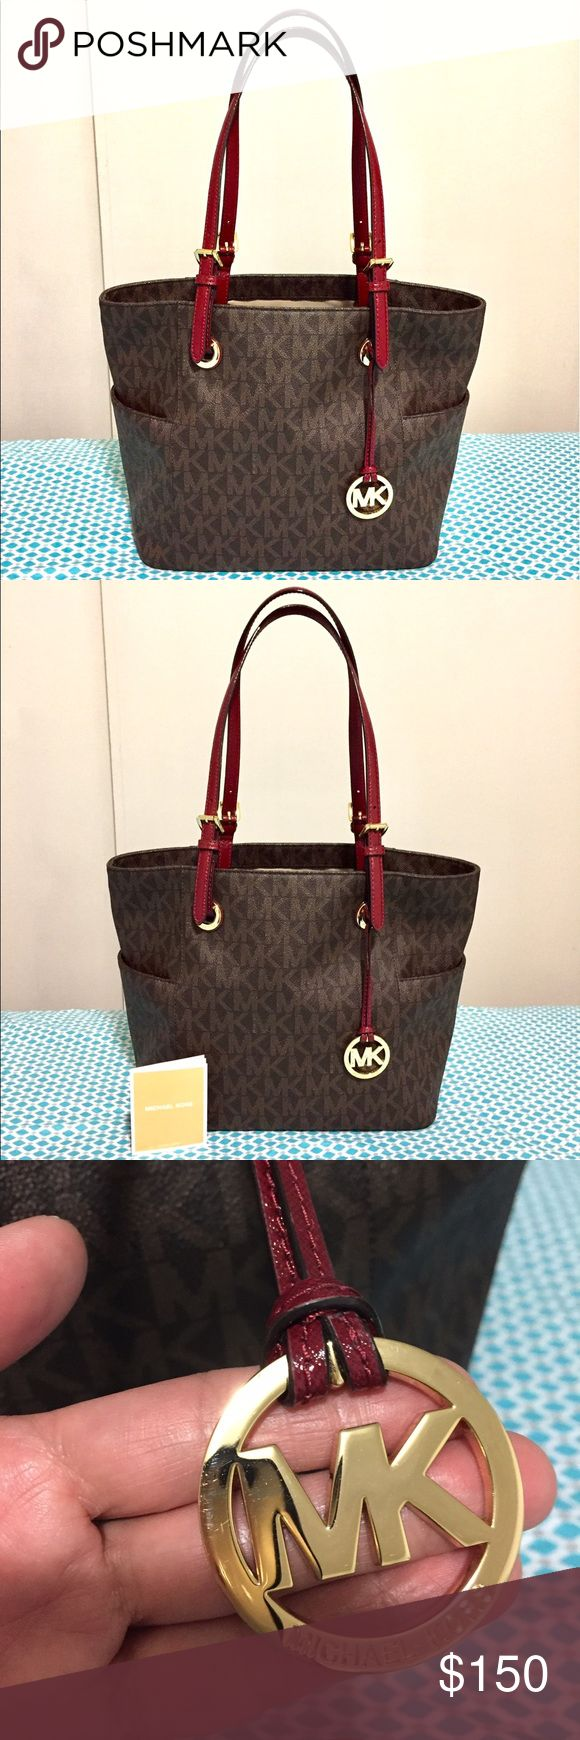 💗Michael Kors Jet Set Travel Tote Barely used it since I bought it  earlier this year. Took care of it well. Michael Kors Bags Totes